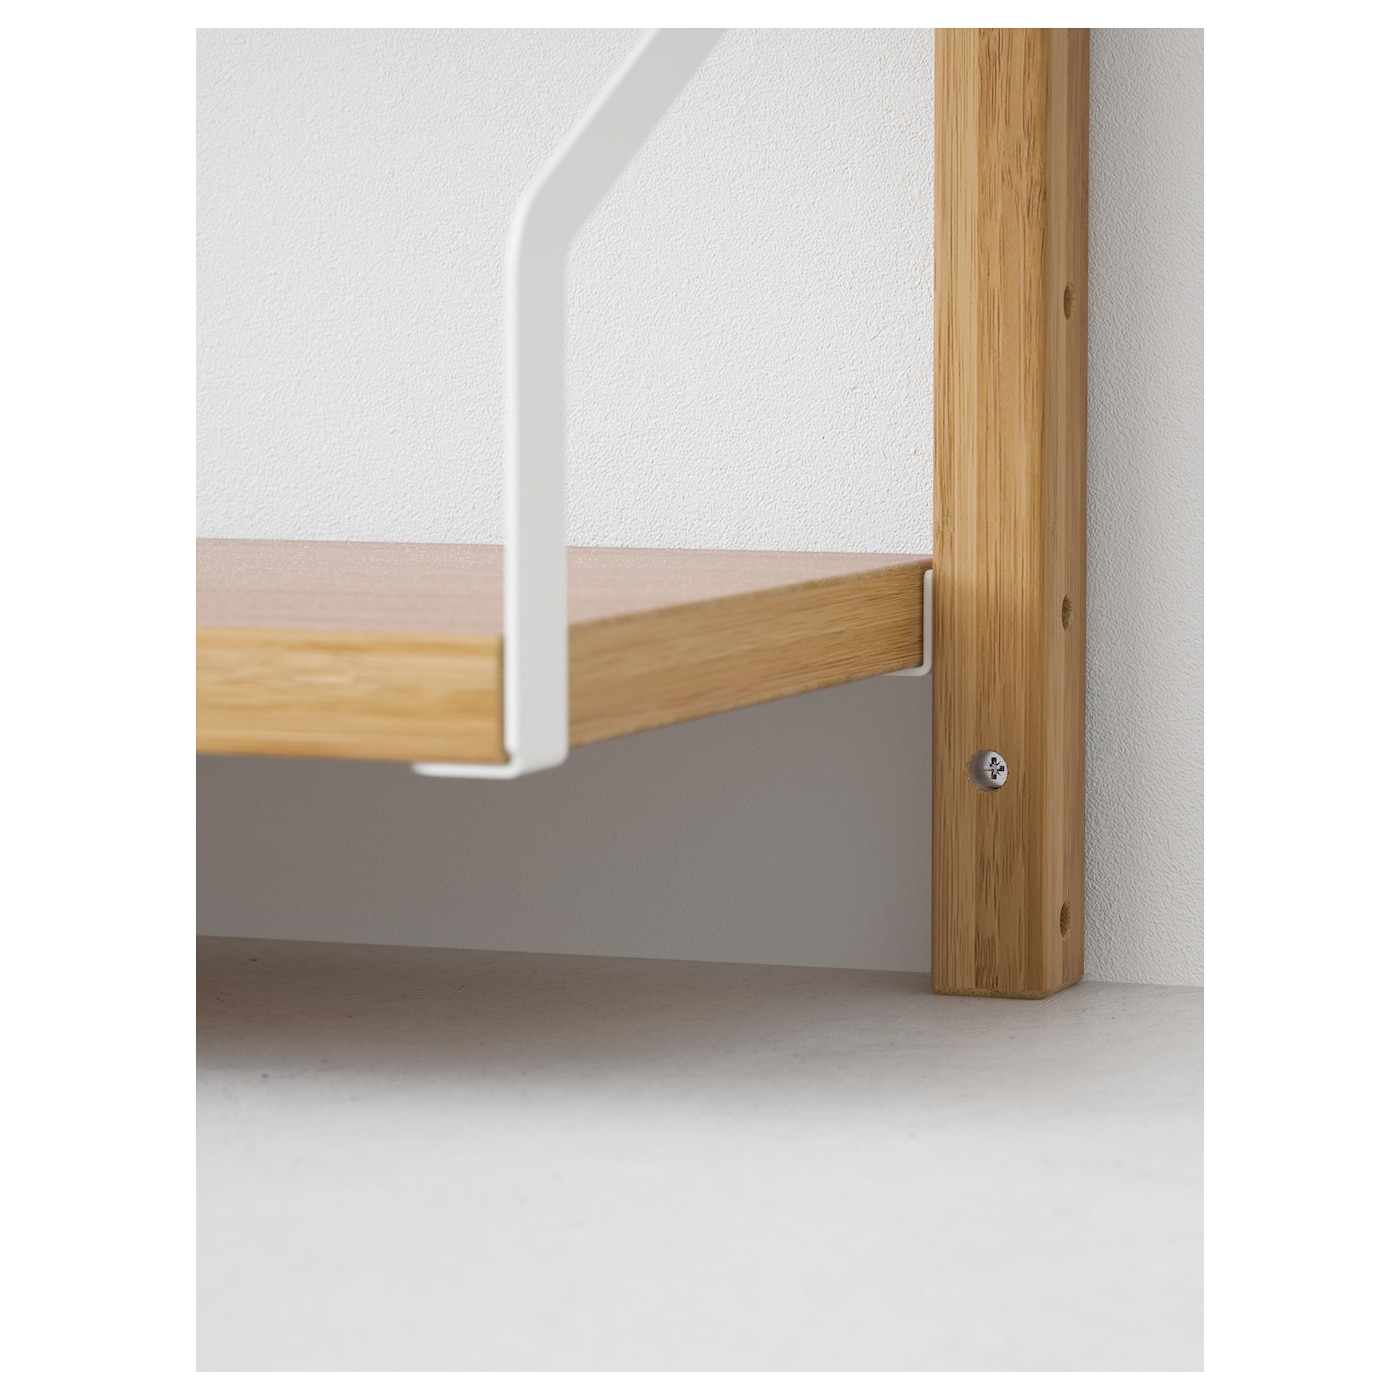 SVALNÄS Wall-mounted shelf combination Bamboo 193x25x176 cm - IKEA